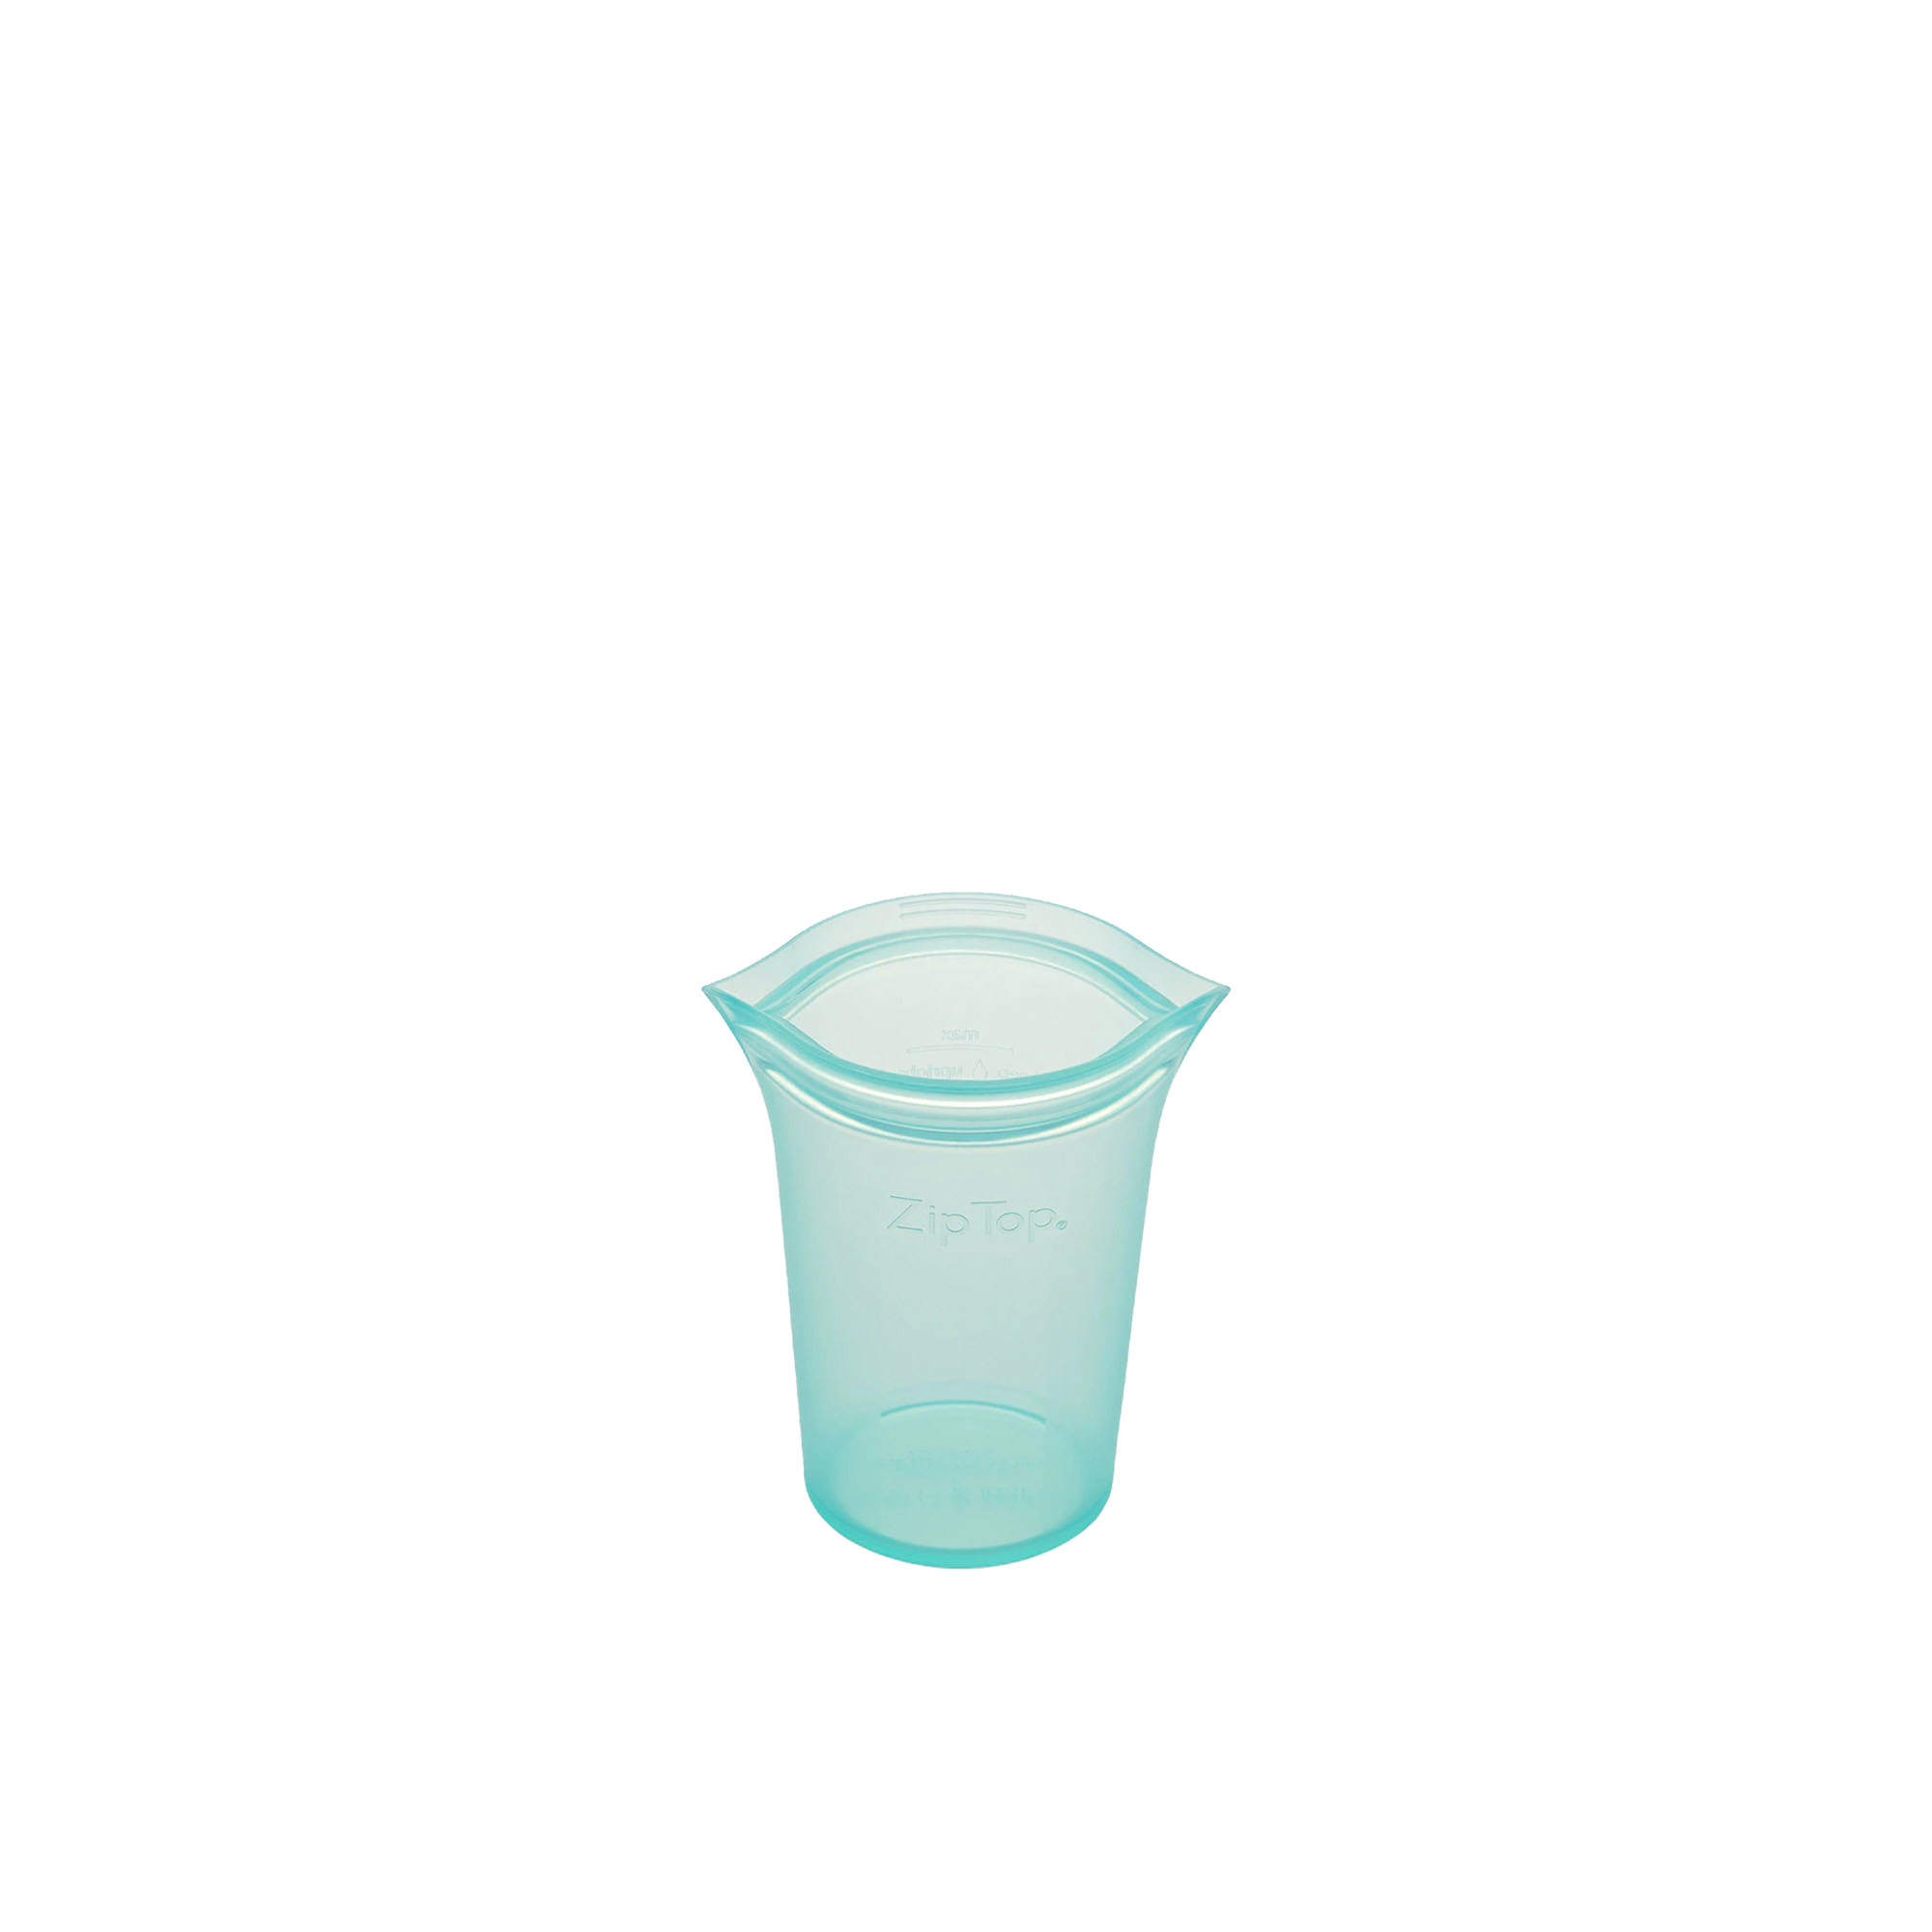 Zip Top Platinum Silicone Small Cup Container 237ml Teal